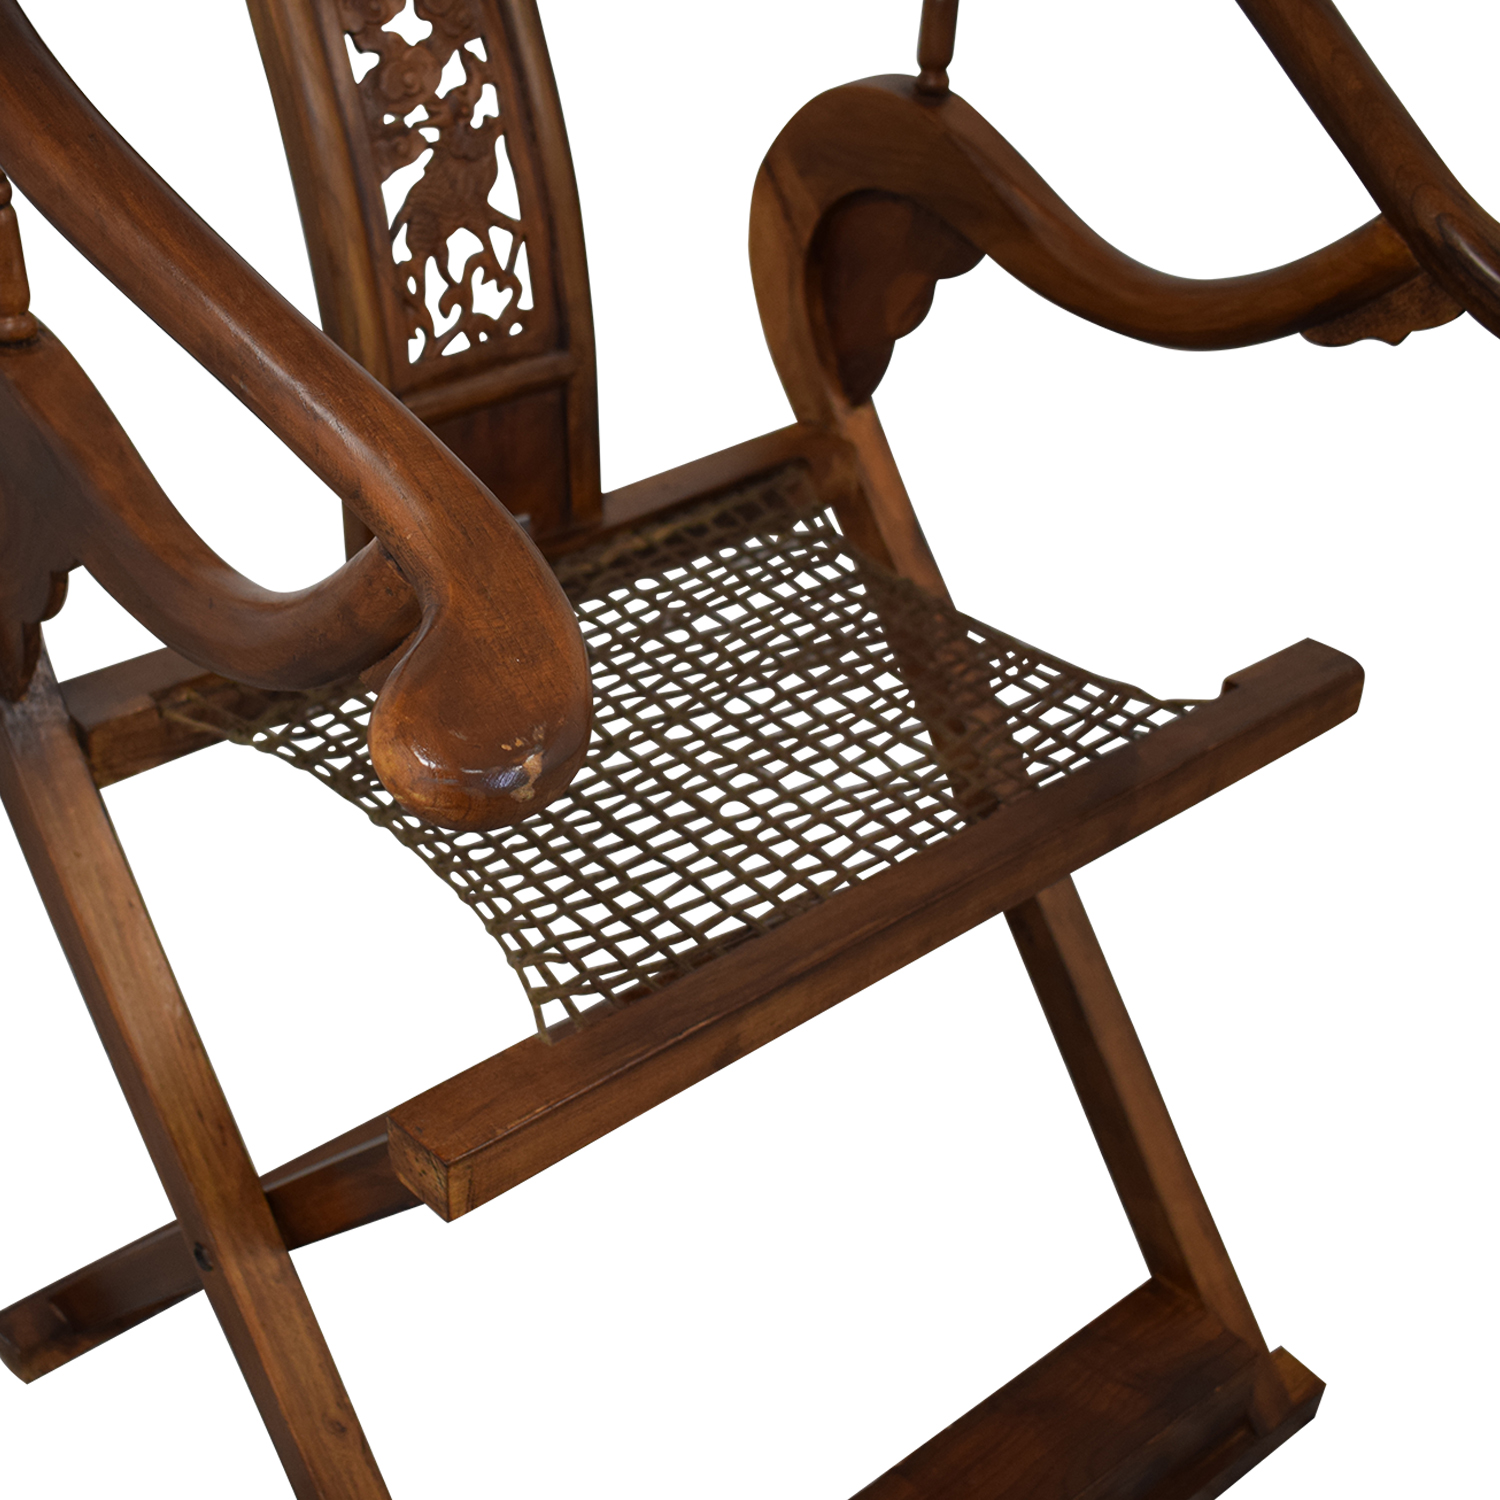 Antique Chinese Emperor Horseshoe Folding Chairs / Chairs